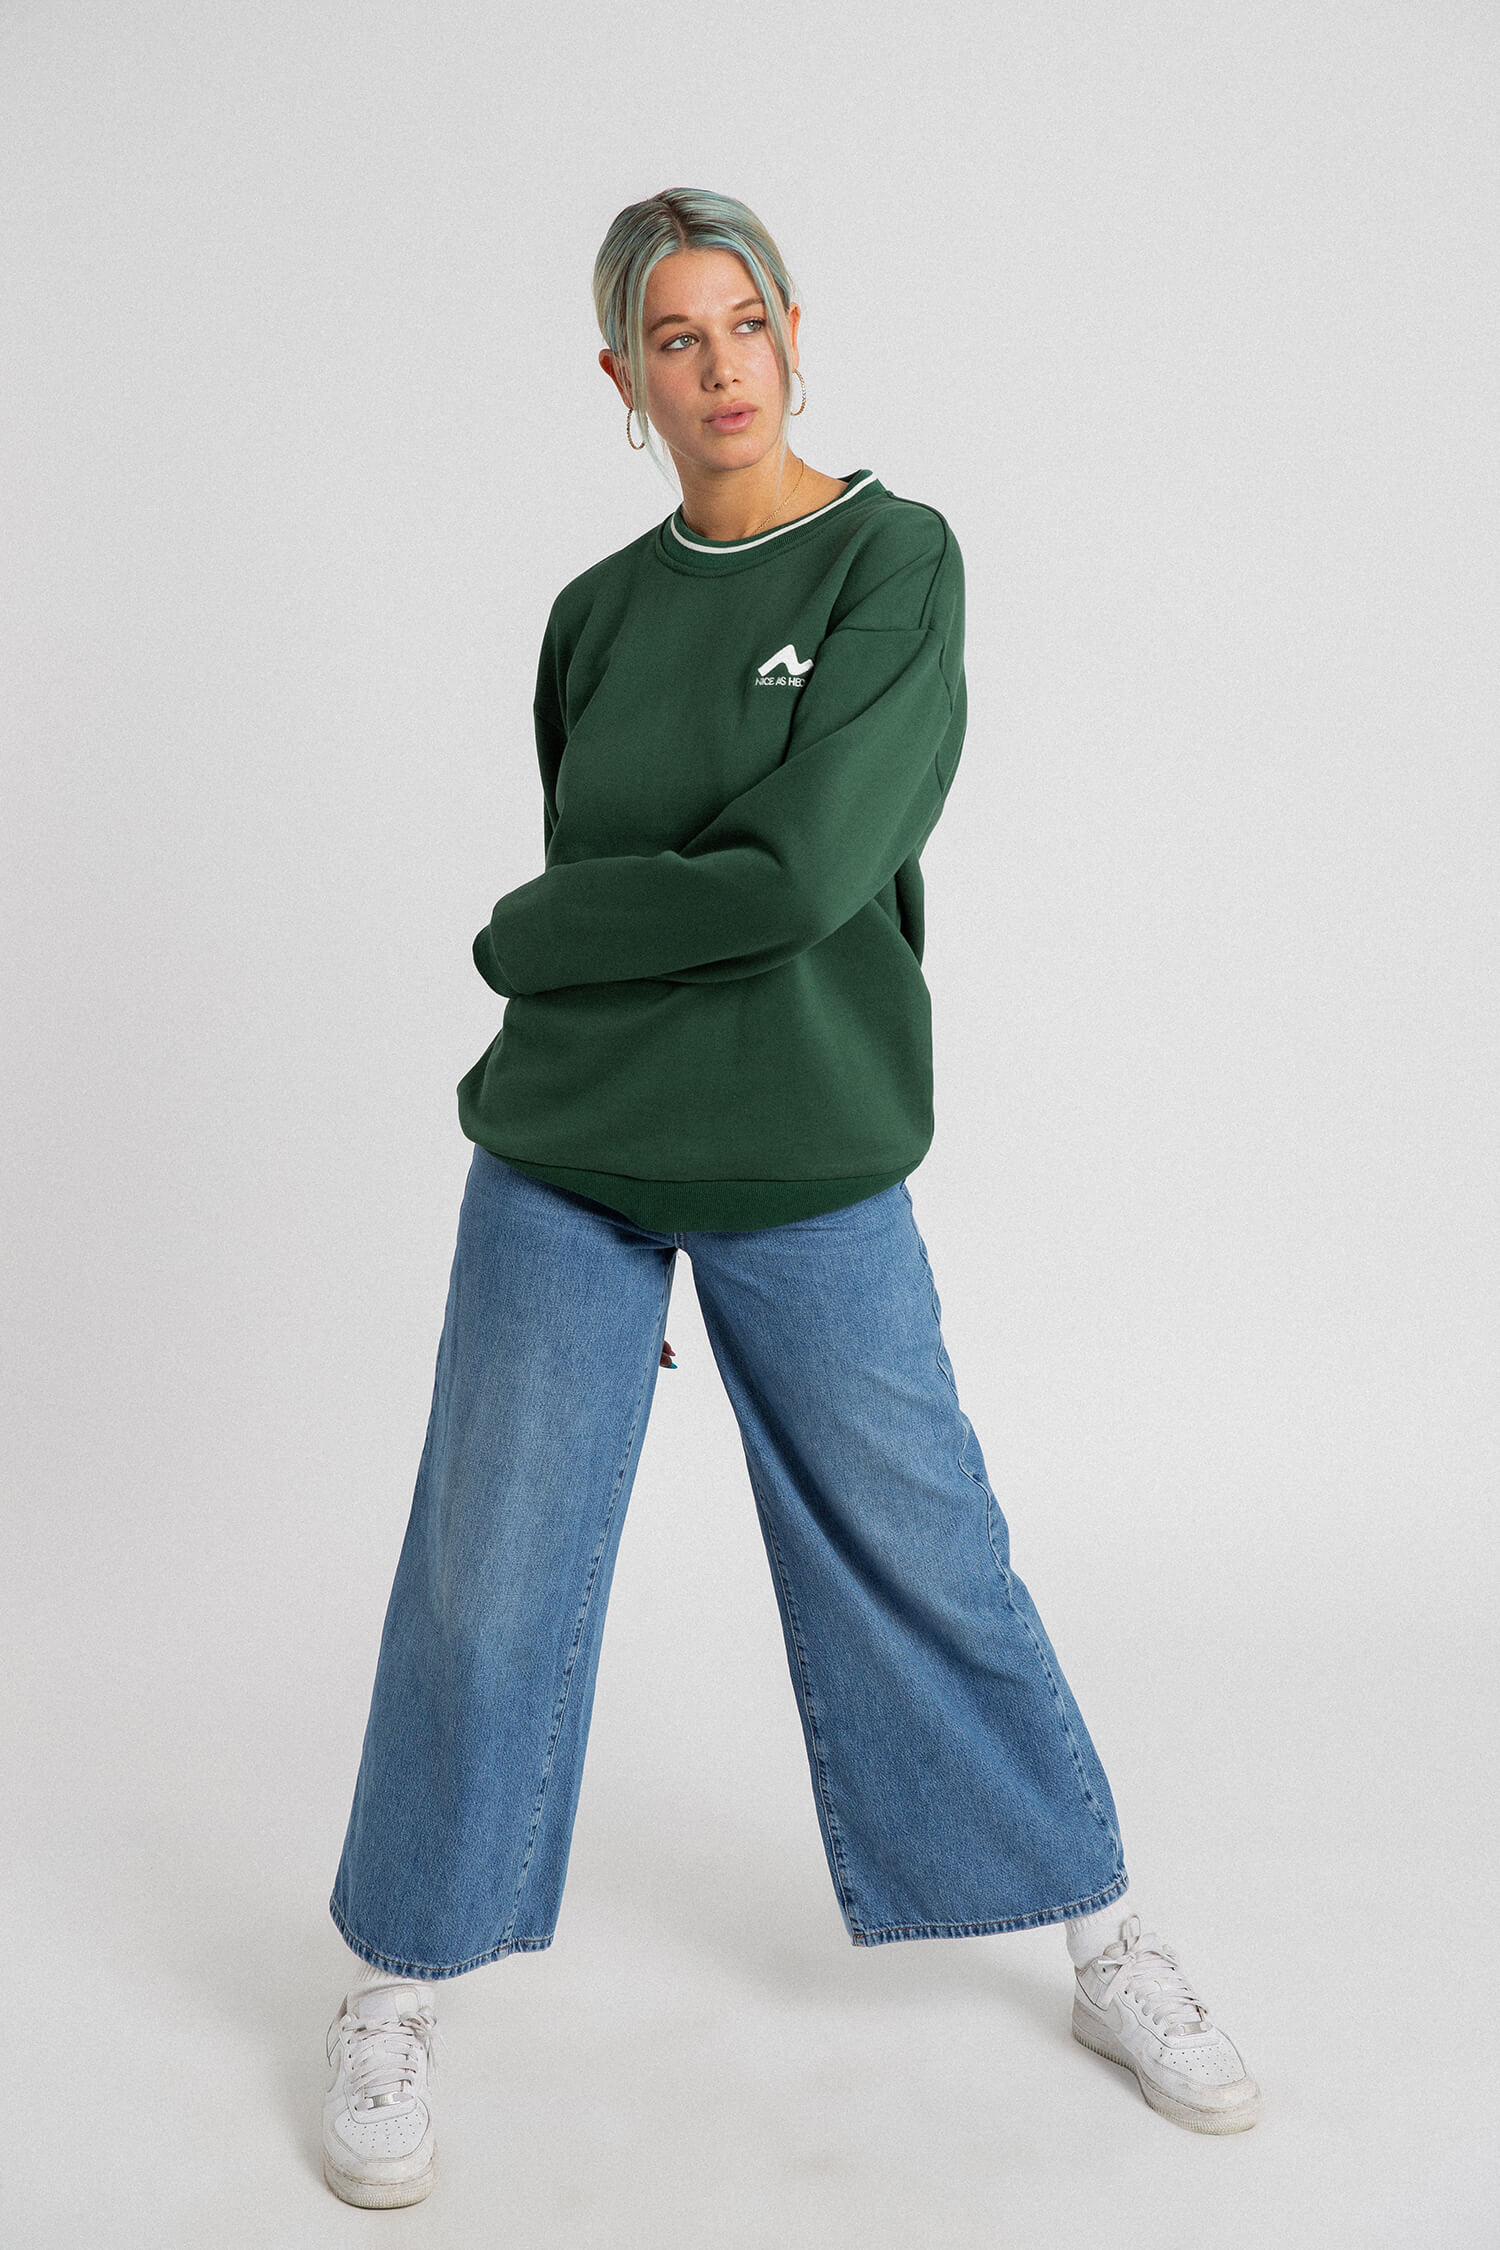 female model front view for green campfire crewneck